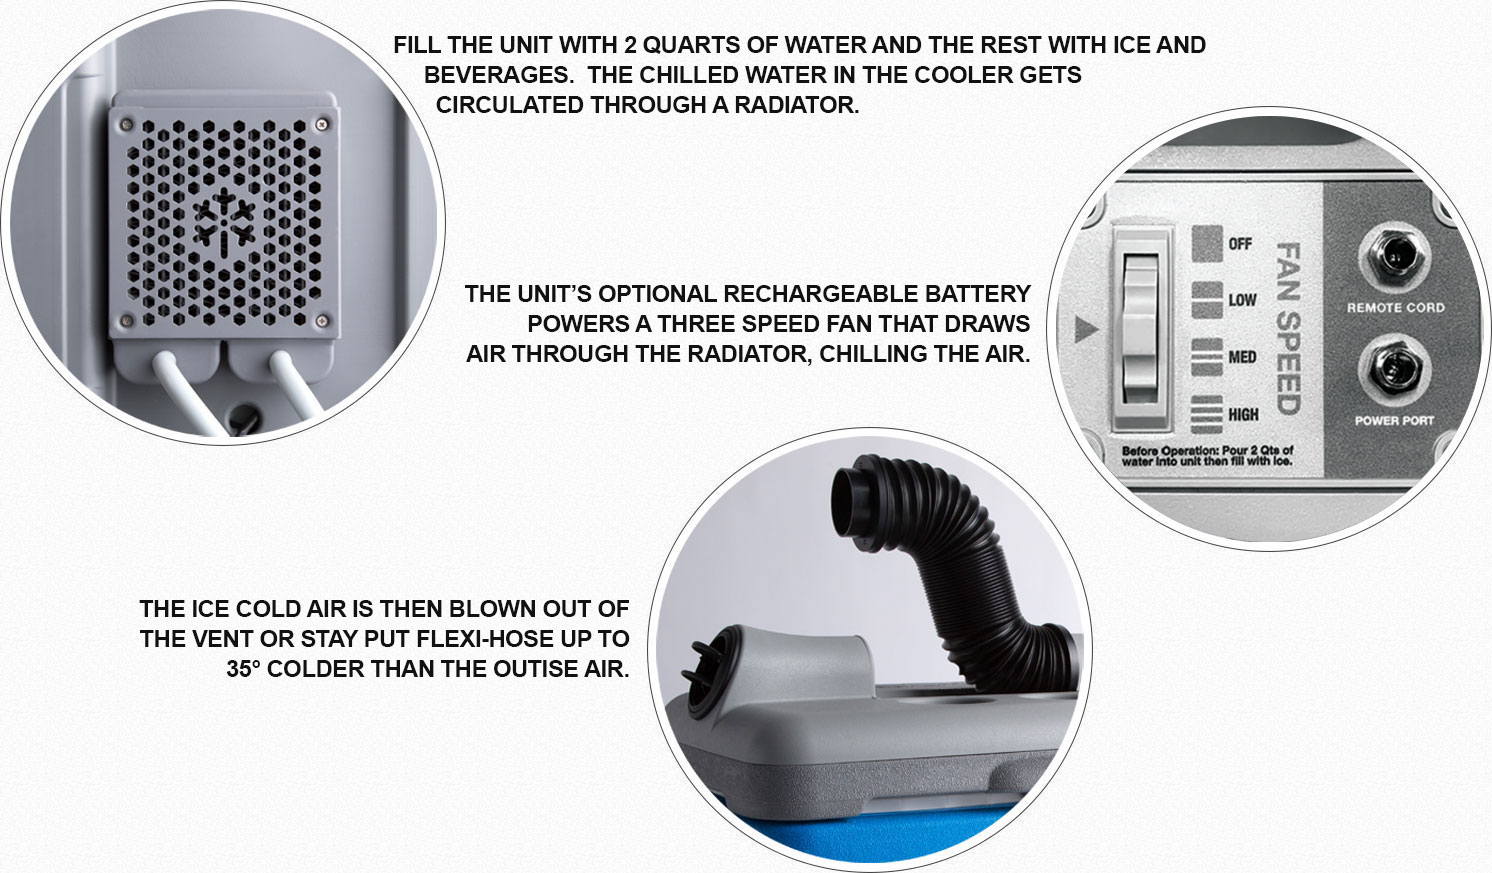 The IcyBreeze works by circulating ice cold water in the cooler through a radiator. A three speed fan draws air under the lid and drawing it through a chilled radiator, cooling the air. The ice cold air is then blown out of the Flexi-hose up to 35 degrees cooler than the outside air.